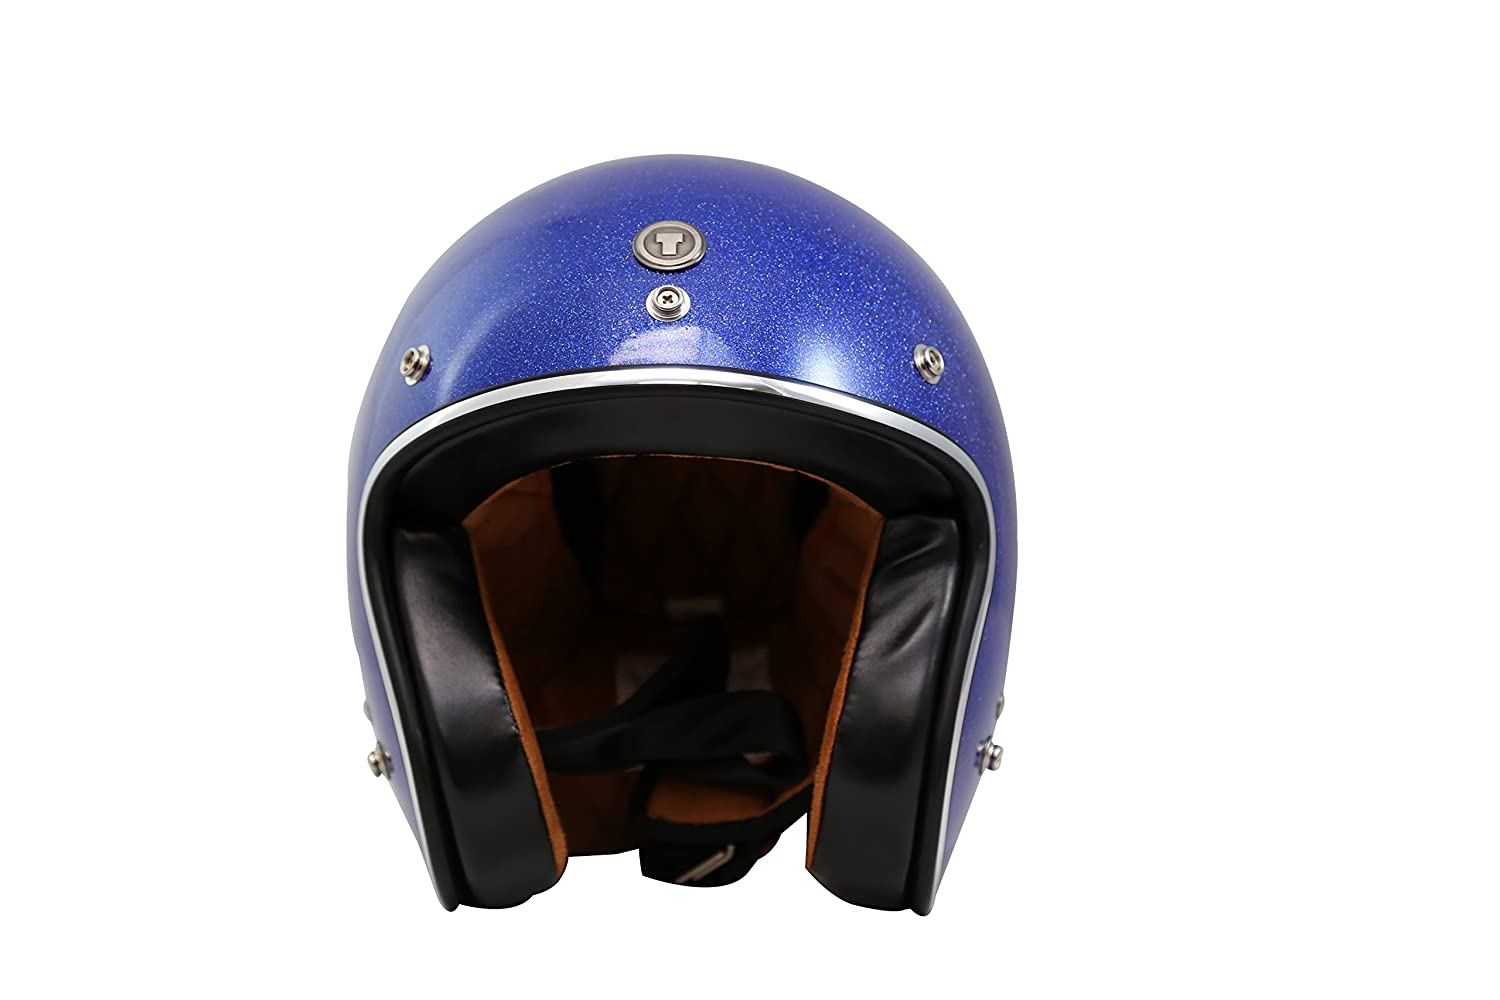 Blueberry Blue, XX-Large TORC T50 Route 66 3//4 Helmet with Super Flake Speciality Paint